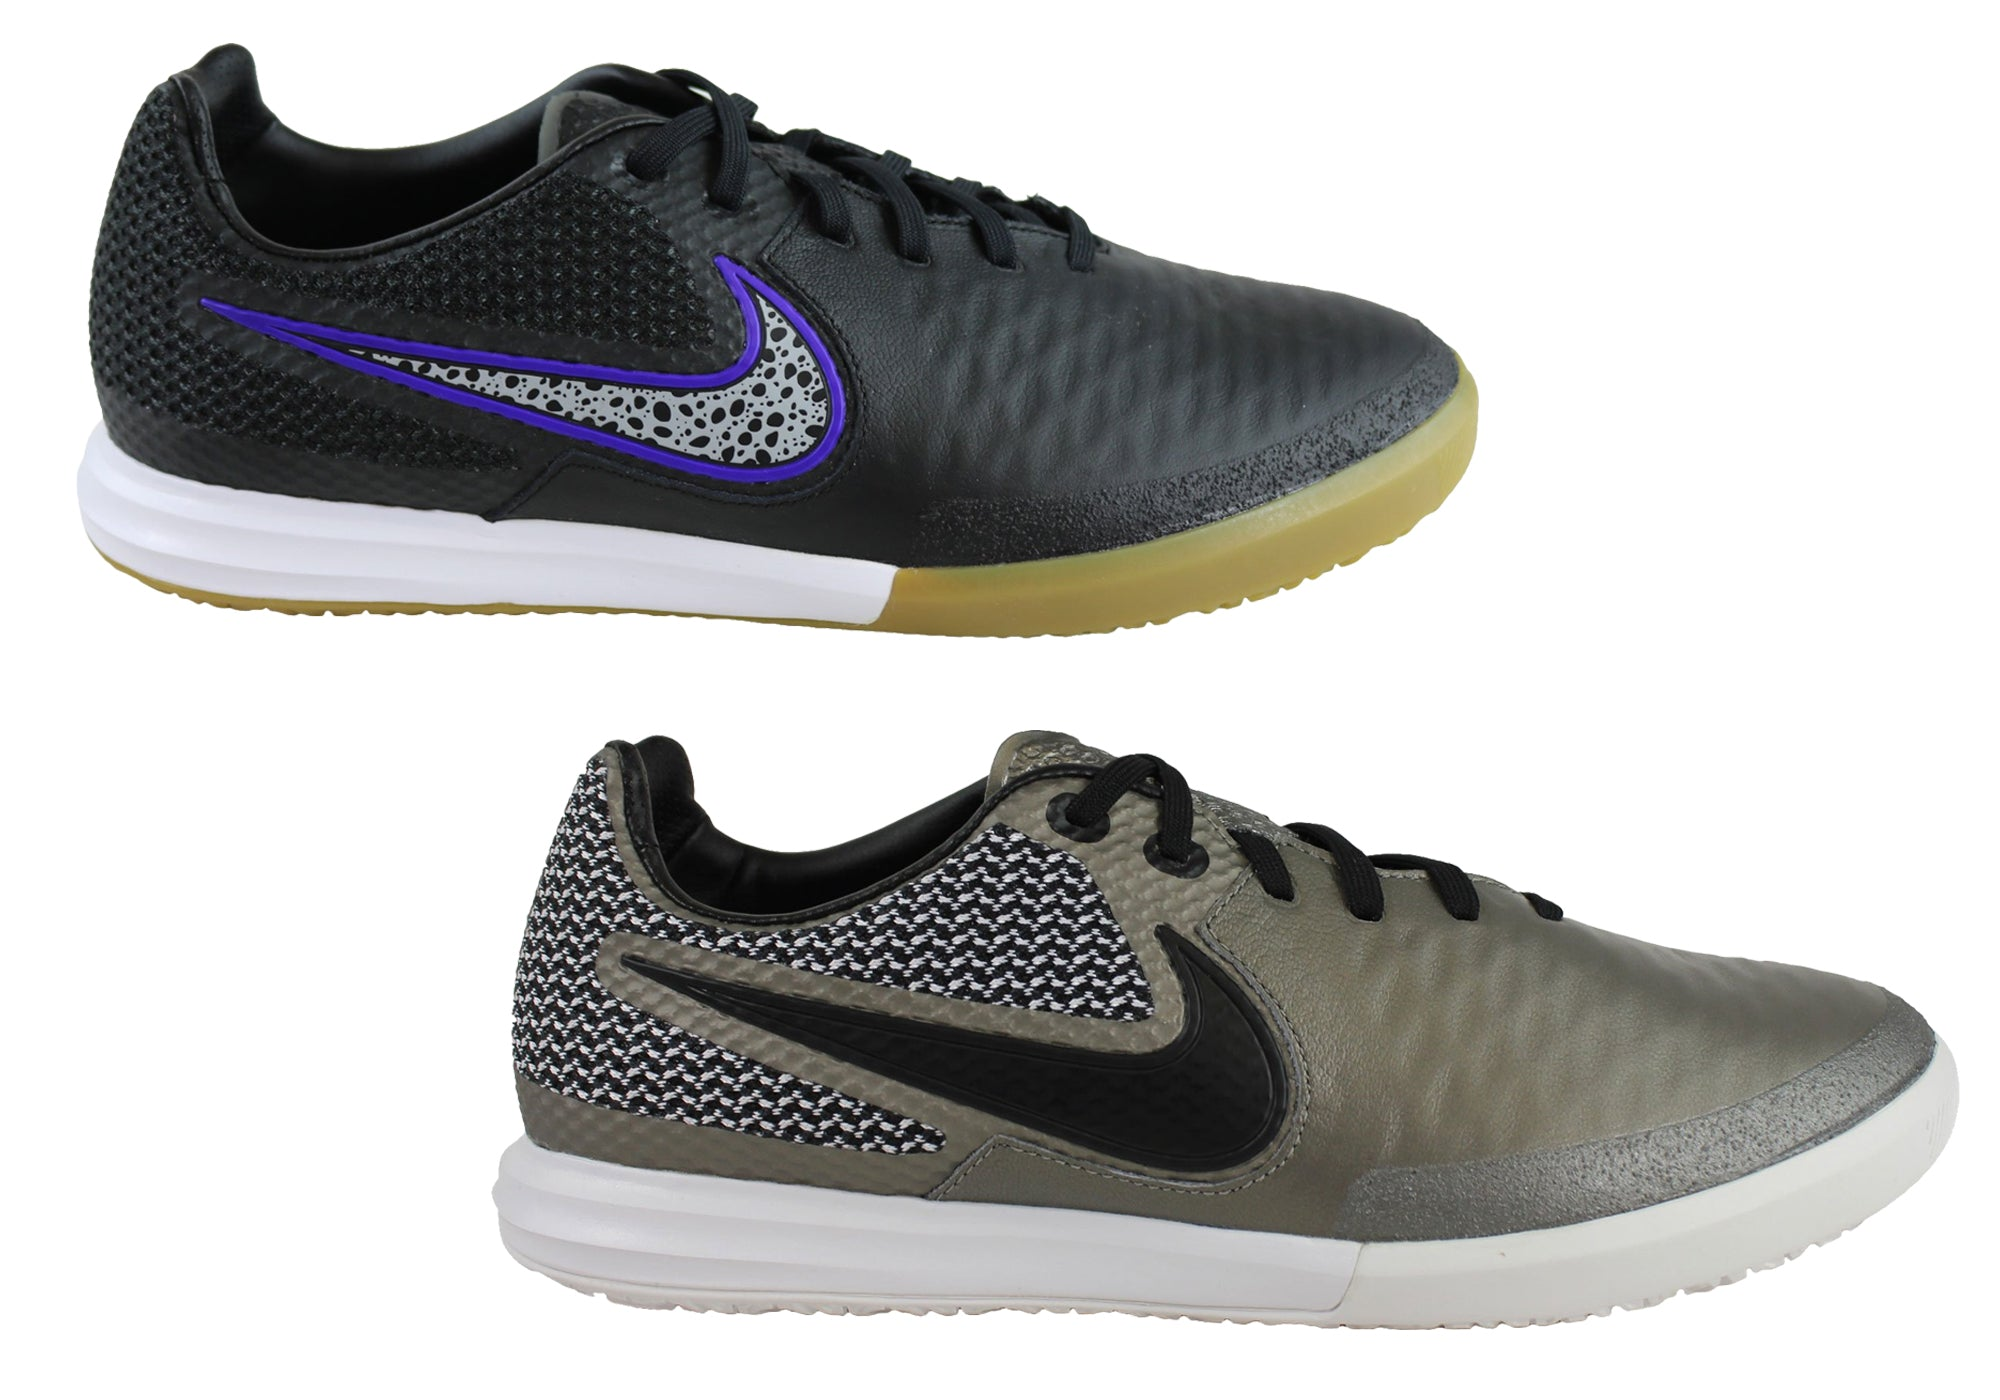 official photos 7271c c8732 Details about NEW NIKE MAGISTAX FINALE IC MENS INDOOR FOOTBALL SOCCER  FUTSAL SHOES